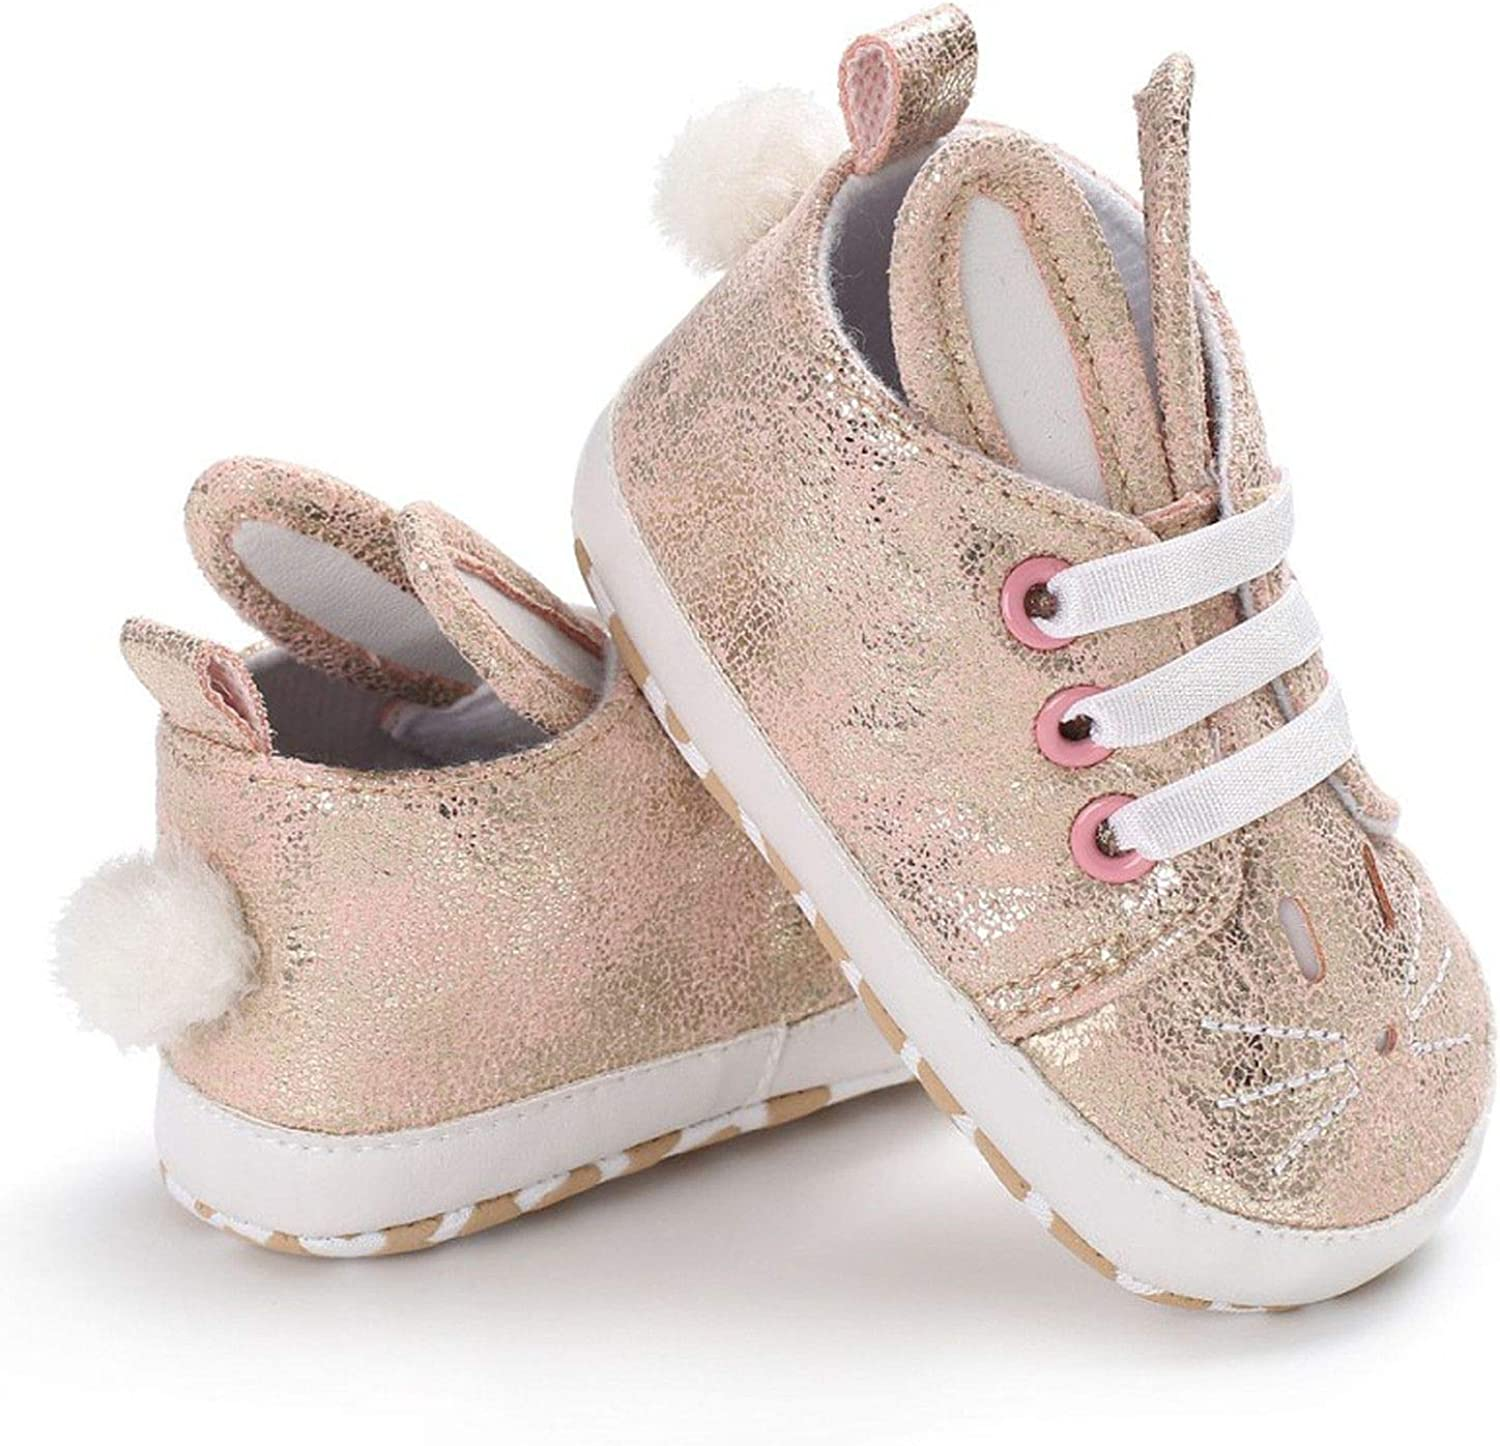 Beautymade Spring Baby Shoes Pu Leather Newborn Boys Girls Shoes First Walkers Baby Moccasins 0-12Months